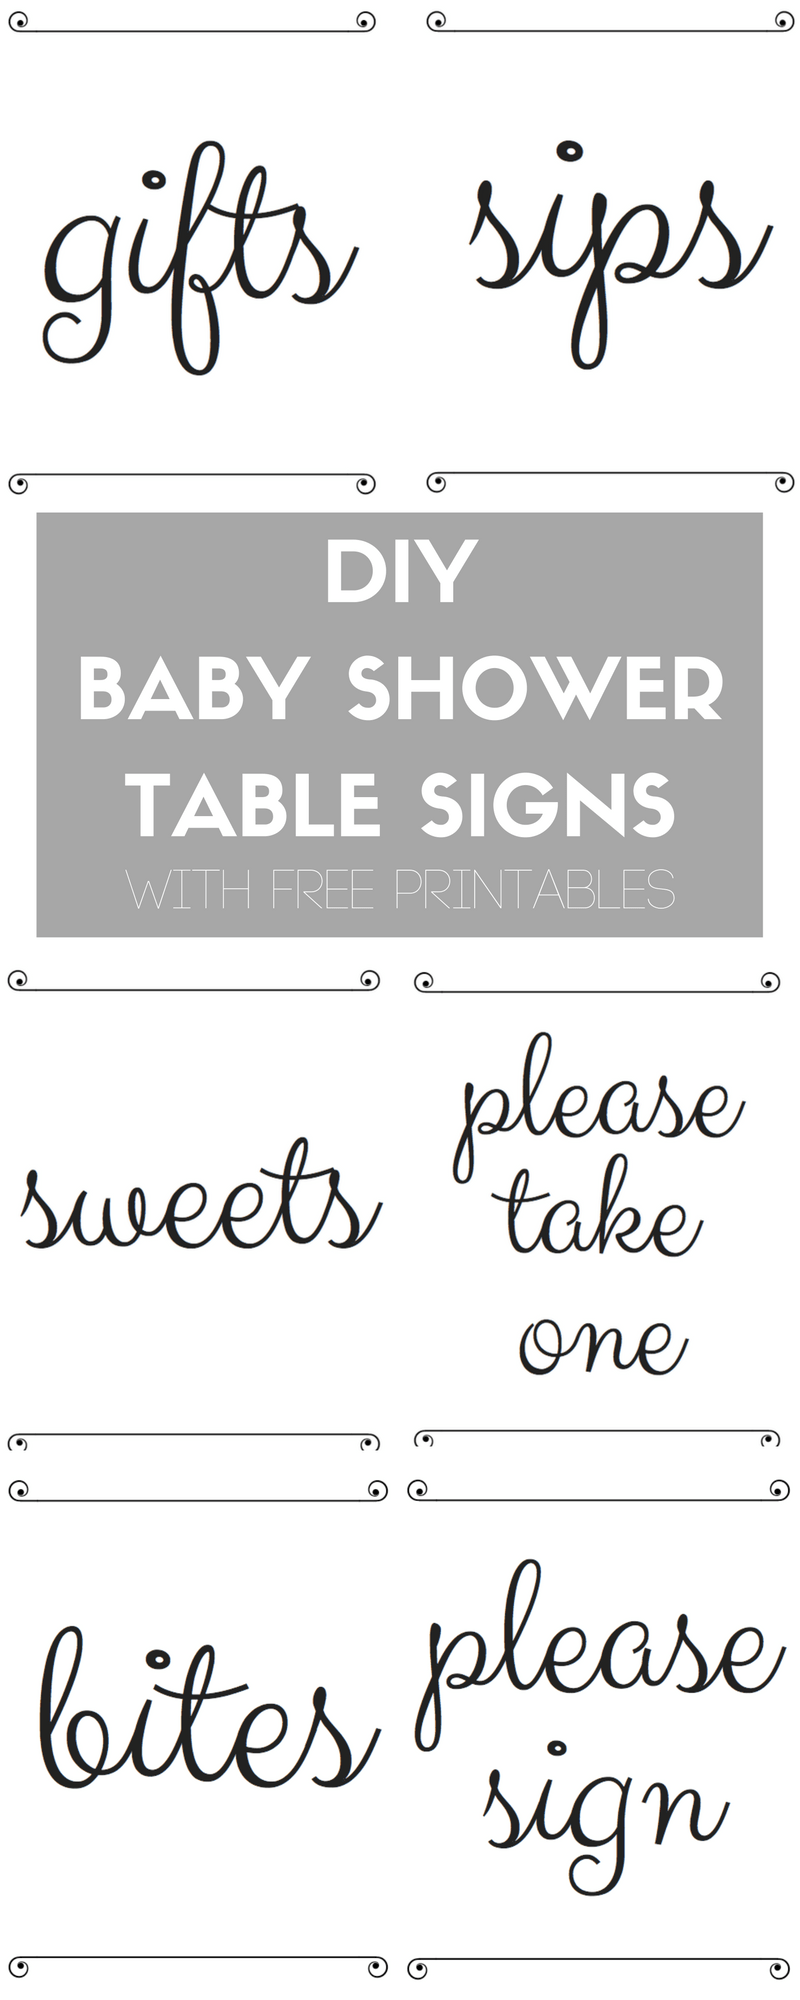 Diy Baby Shower Table Signs With Free Printables Typical Katie Diy Baby  Showertable Signs1 Salsuba Choice